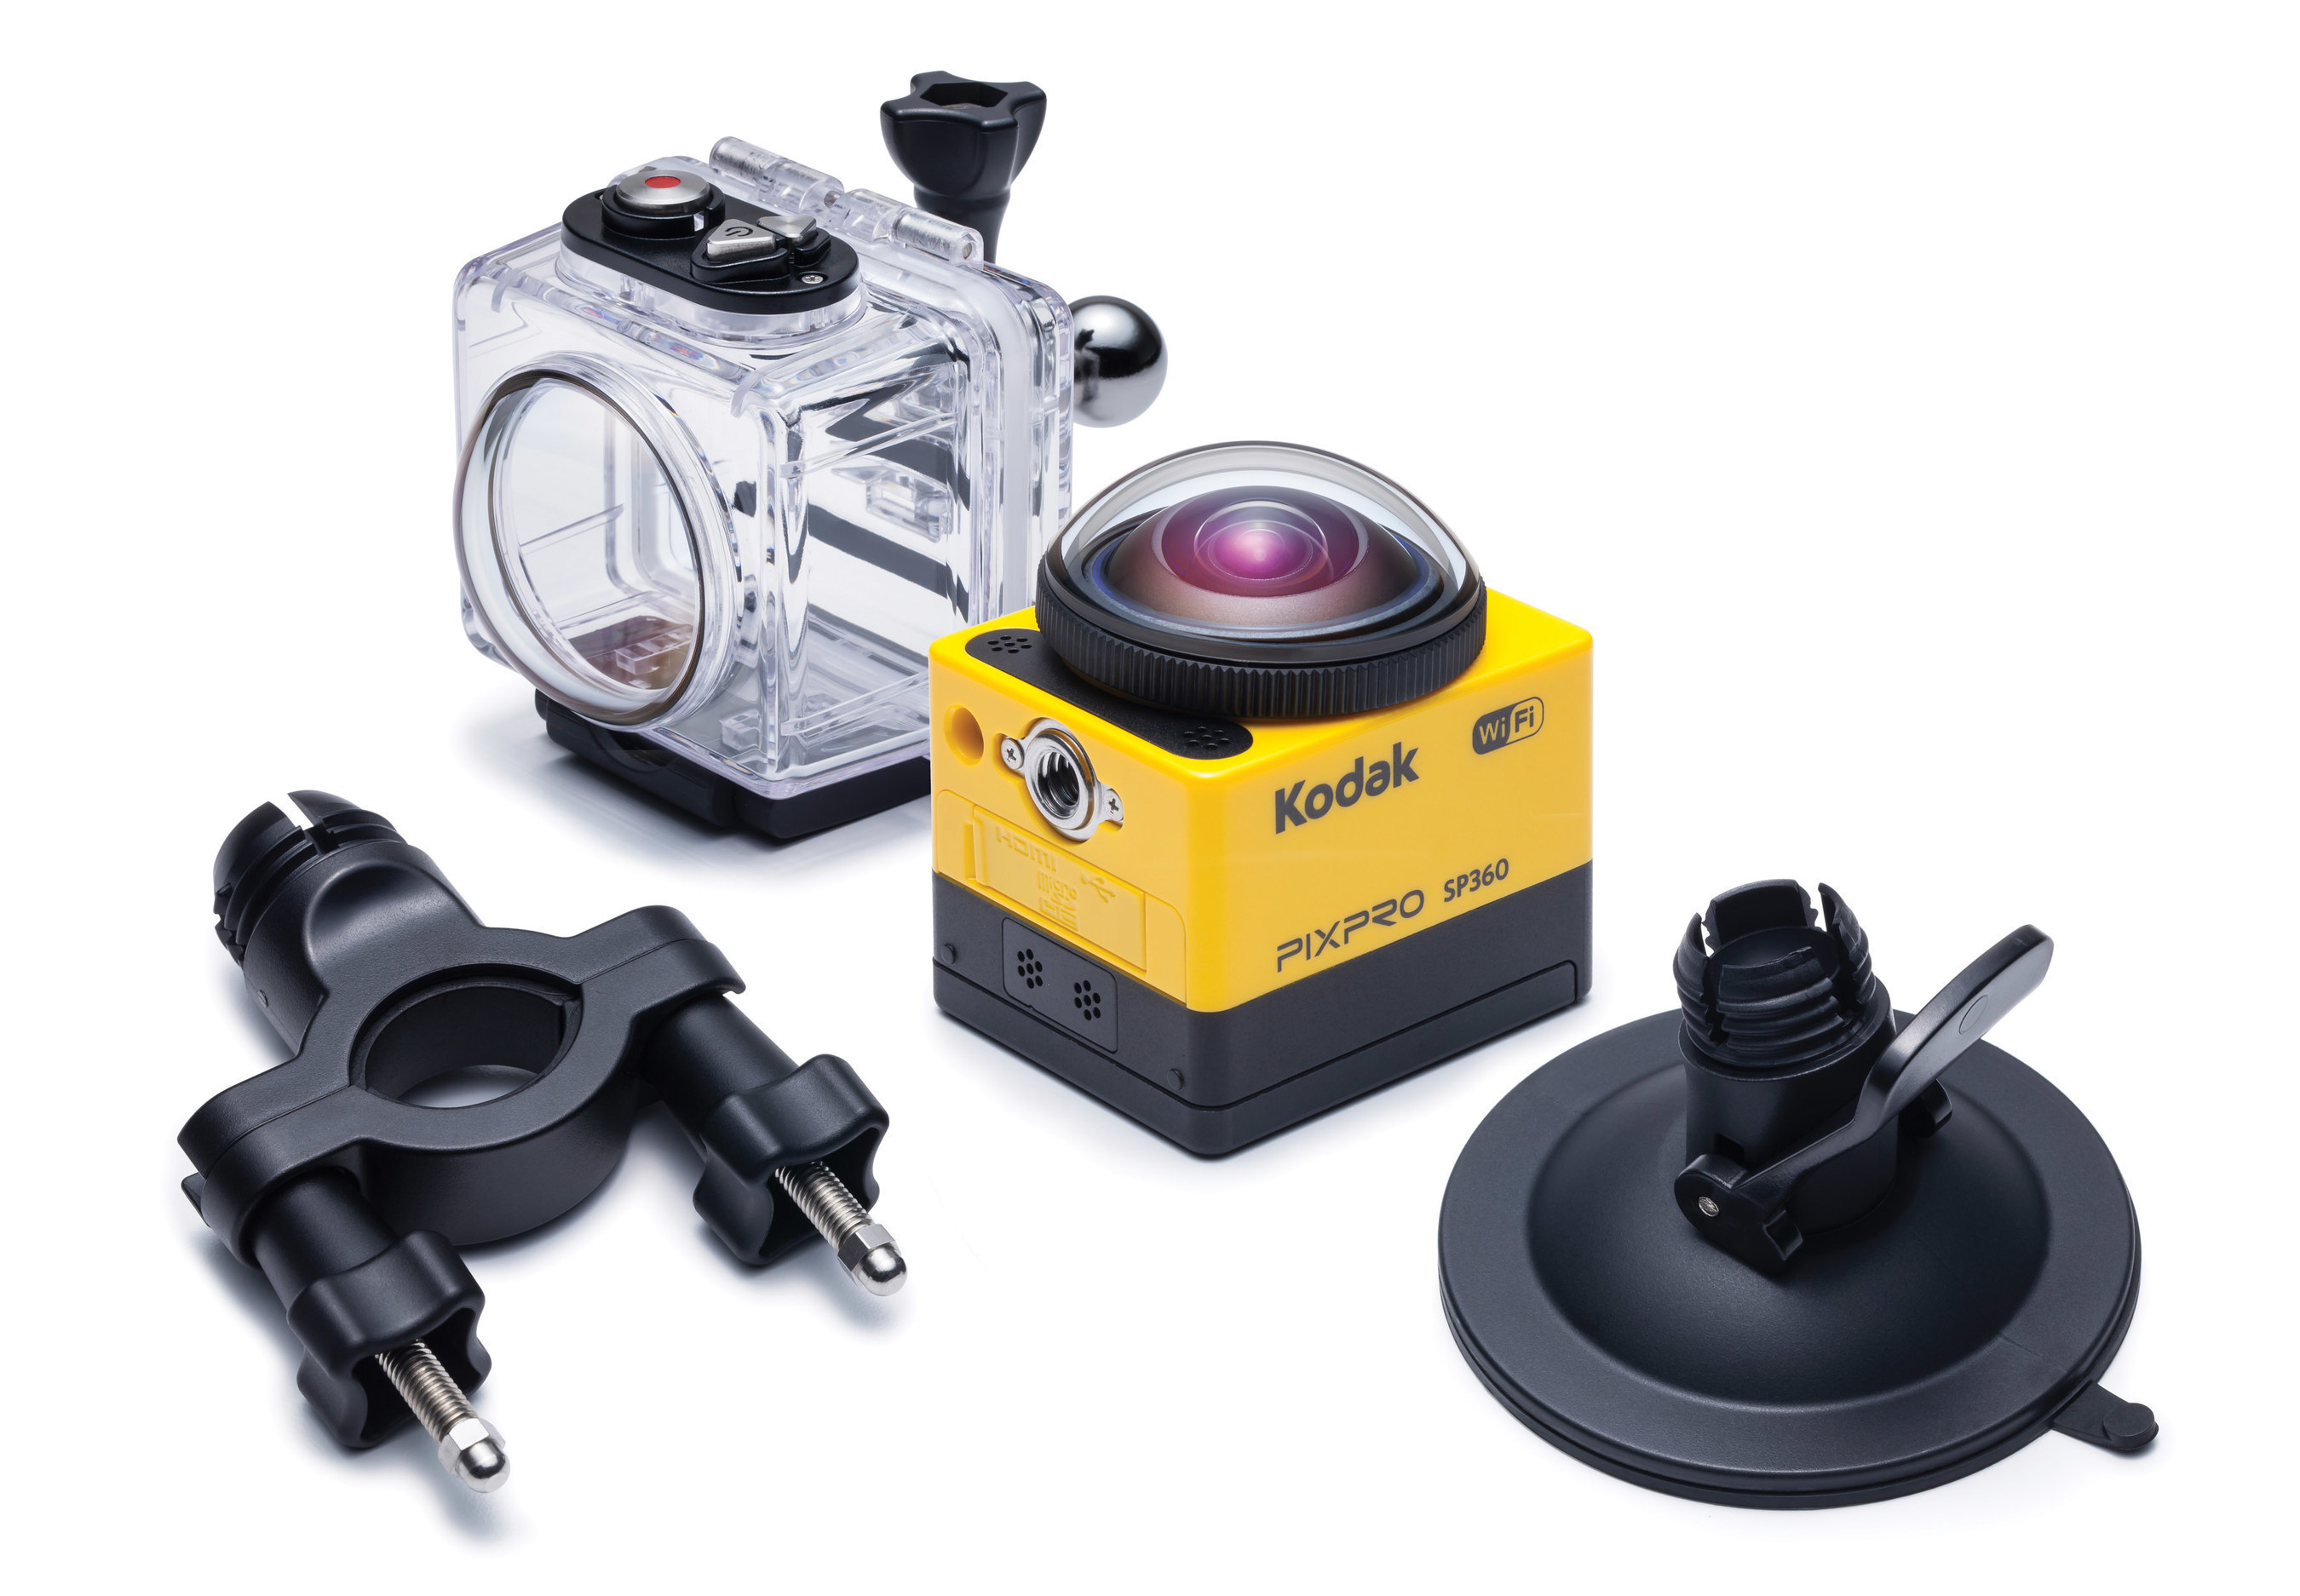 KODAK PIXPRO SP360 Action Camera Amongst The First 360-degree Cameras To Provide Interactive, Immersive Videos On YouTube's 360-degree Video Support